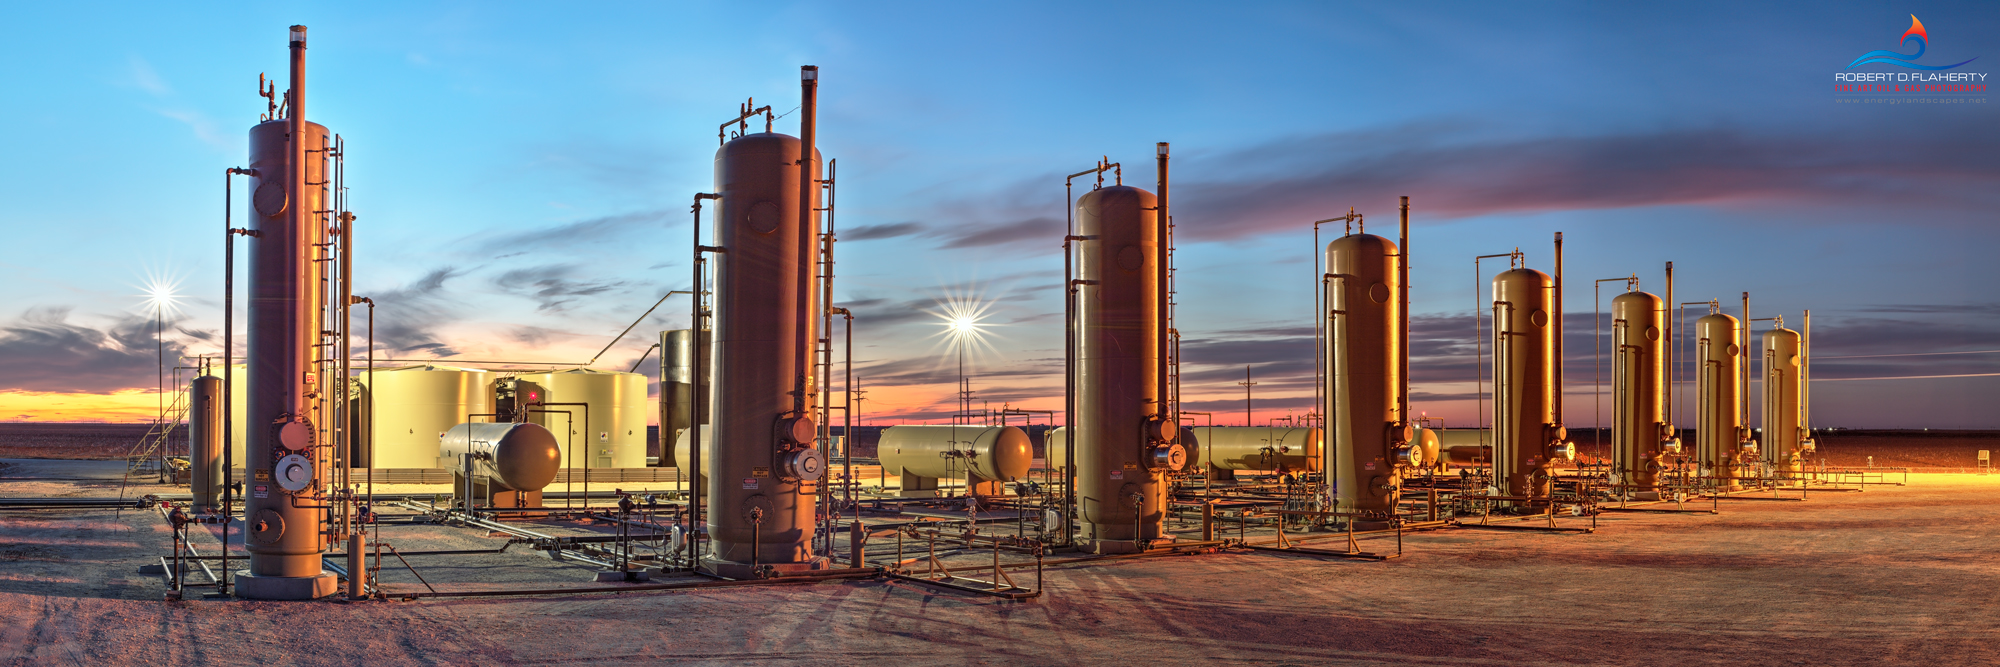 separator battery, oil production, San Andres, Permian Basin, Autumn, sunset, Midland Texas, Seminole Texas, produced water, panorama, high resolution, 